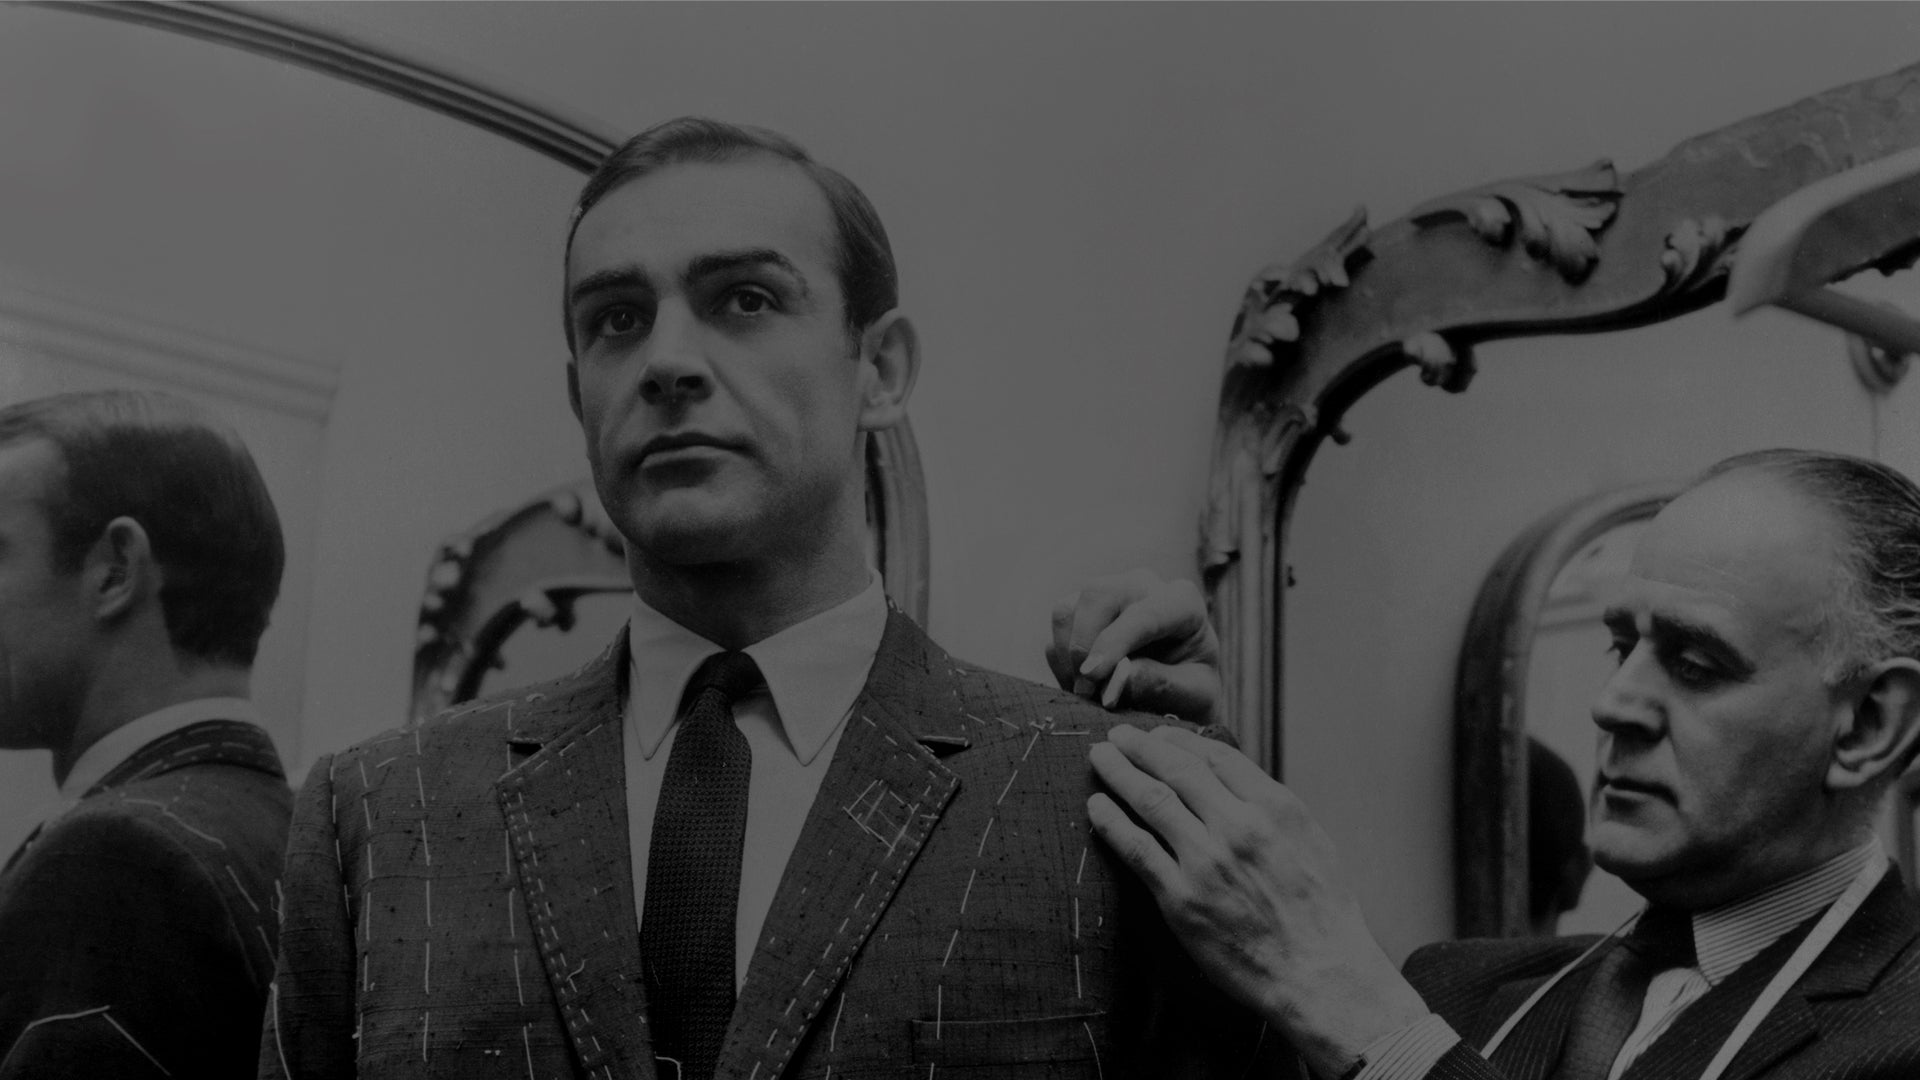 Anthony Sinclair, James Bond's Original tailor and creator of the Conduit Cut